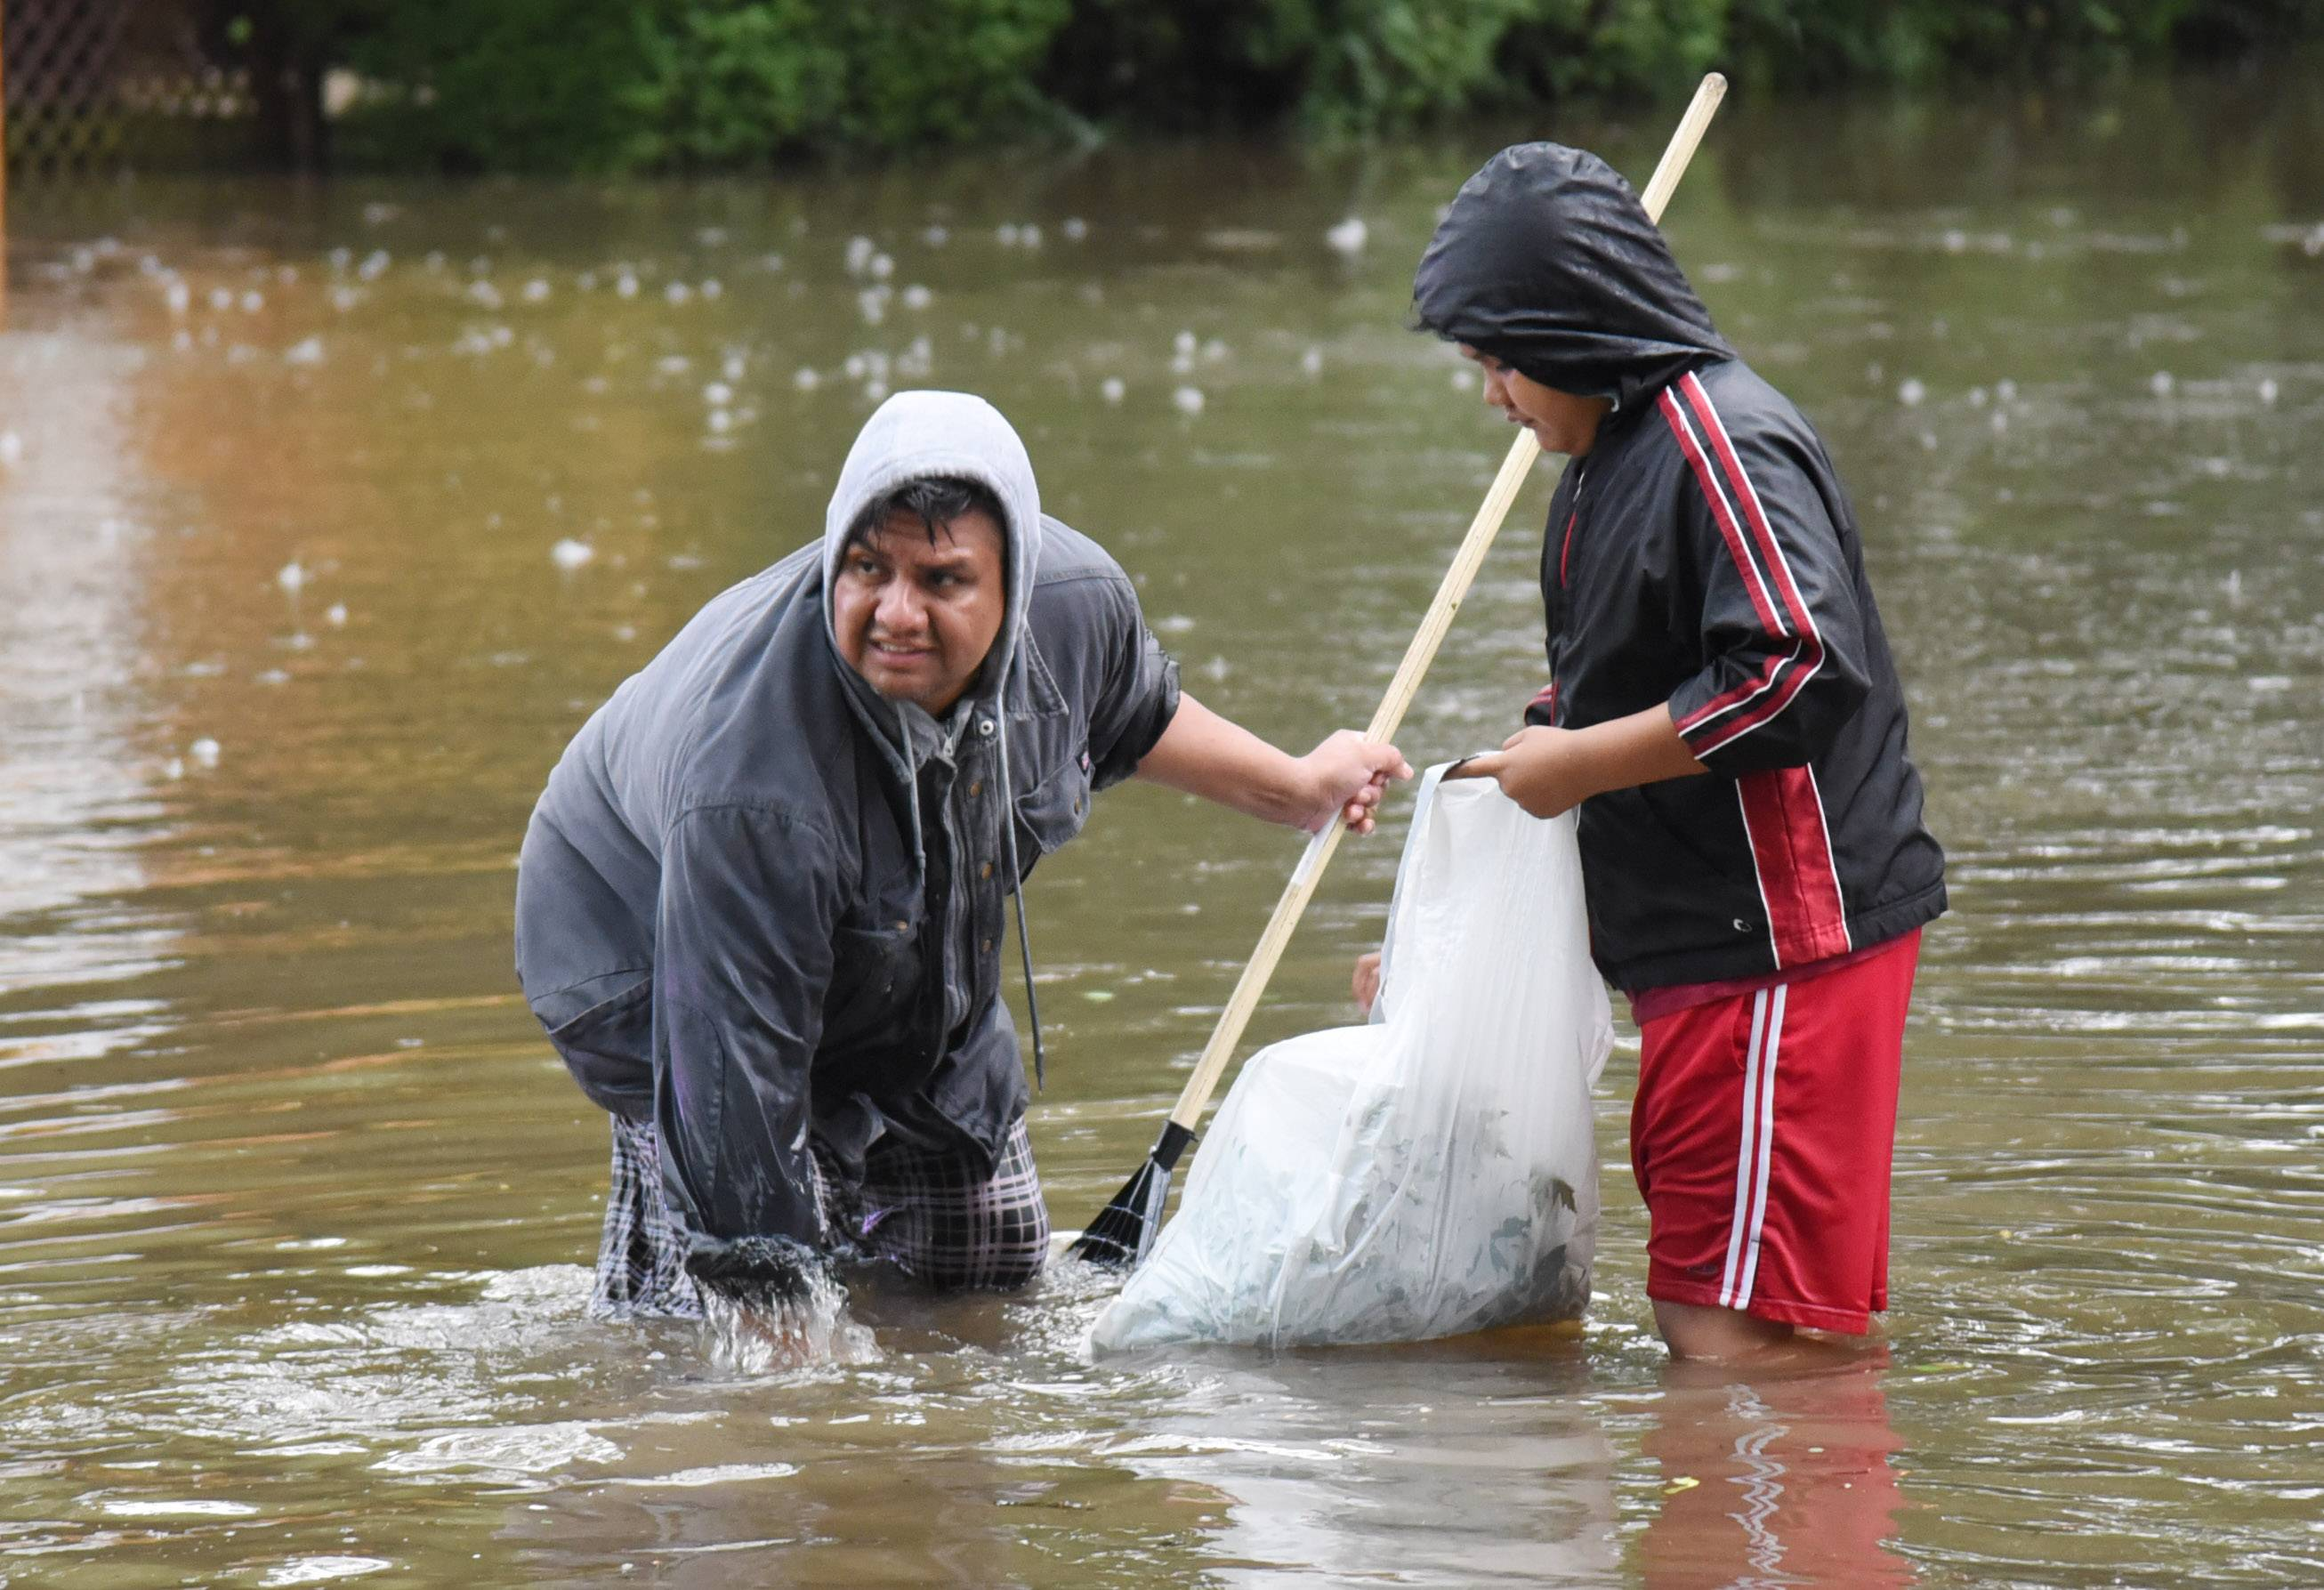 Jorge Morales and his 10-year-old son Ariel try to clear drains in front of his house on Lincoln Avenue and West Division Street in Mundelein during the recent flooding.